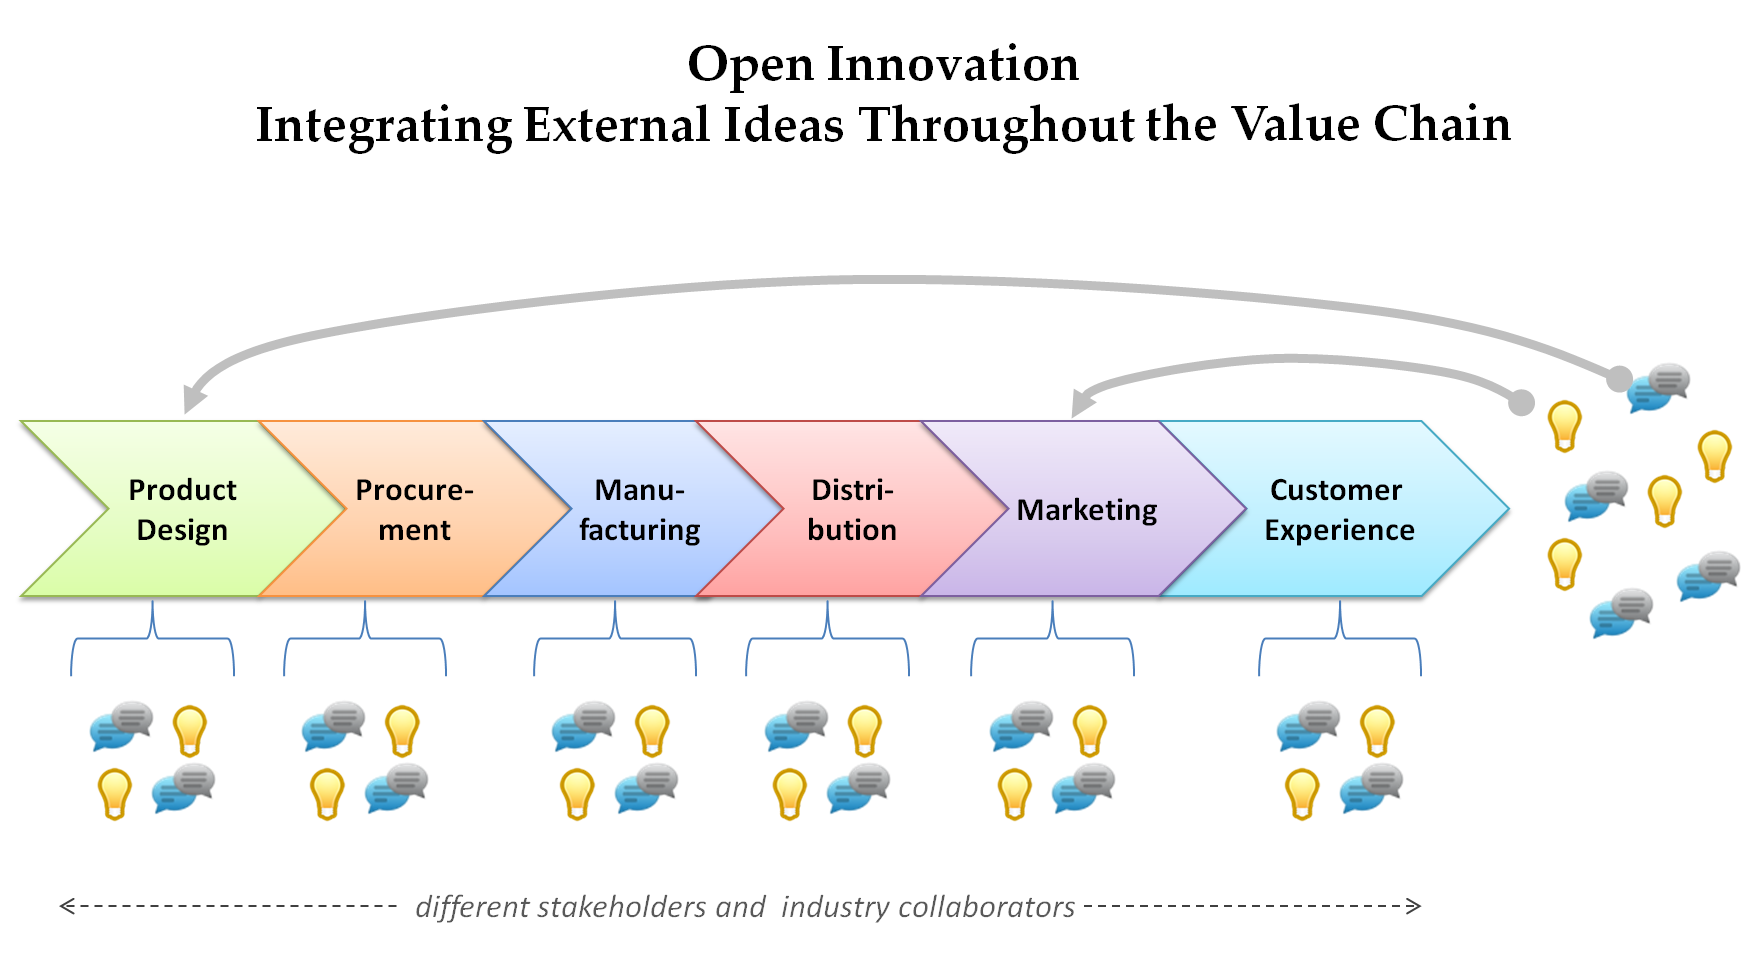 Beyond Social CRM: The Open Innovation Revolution